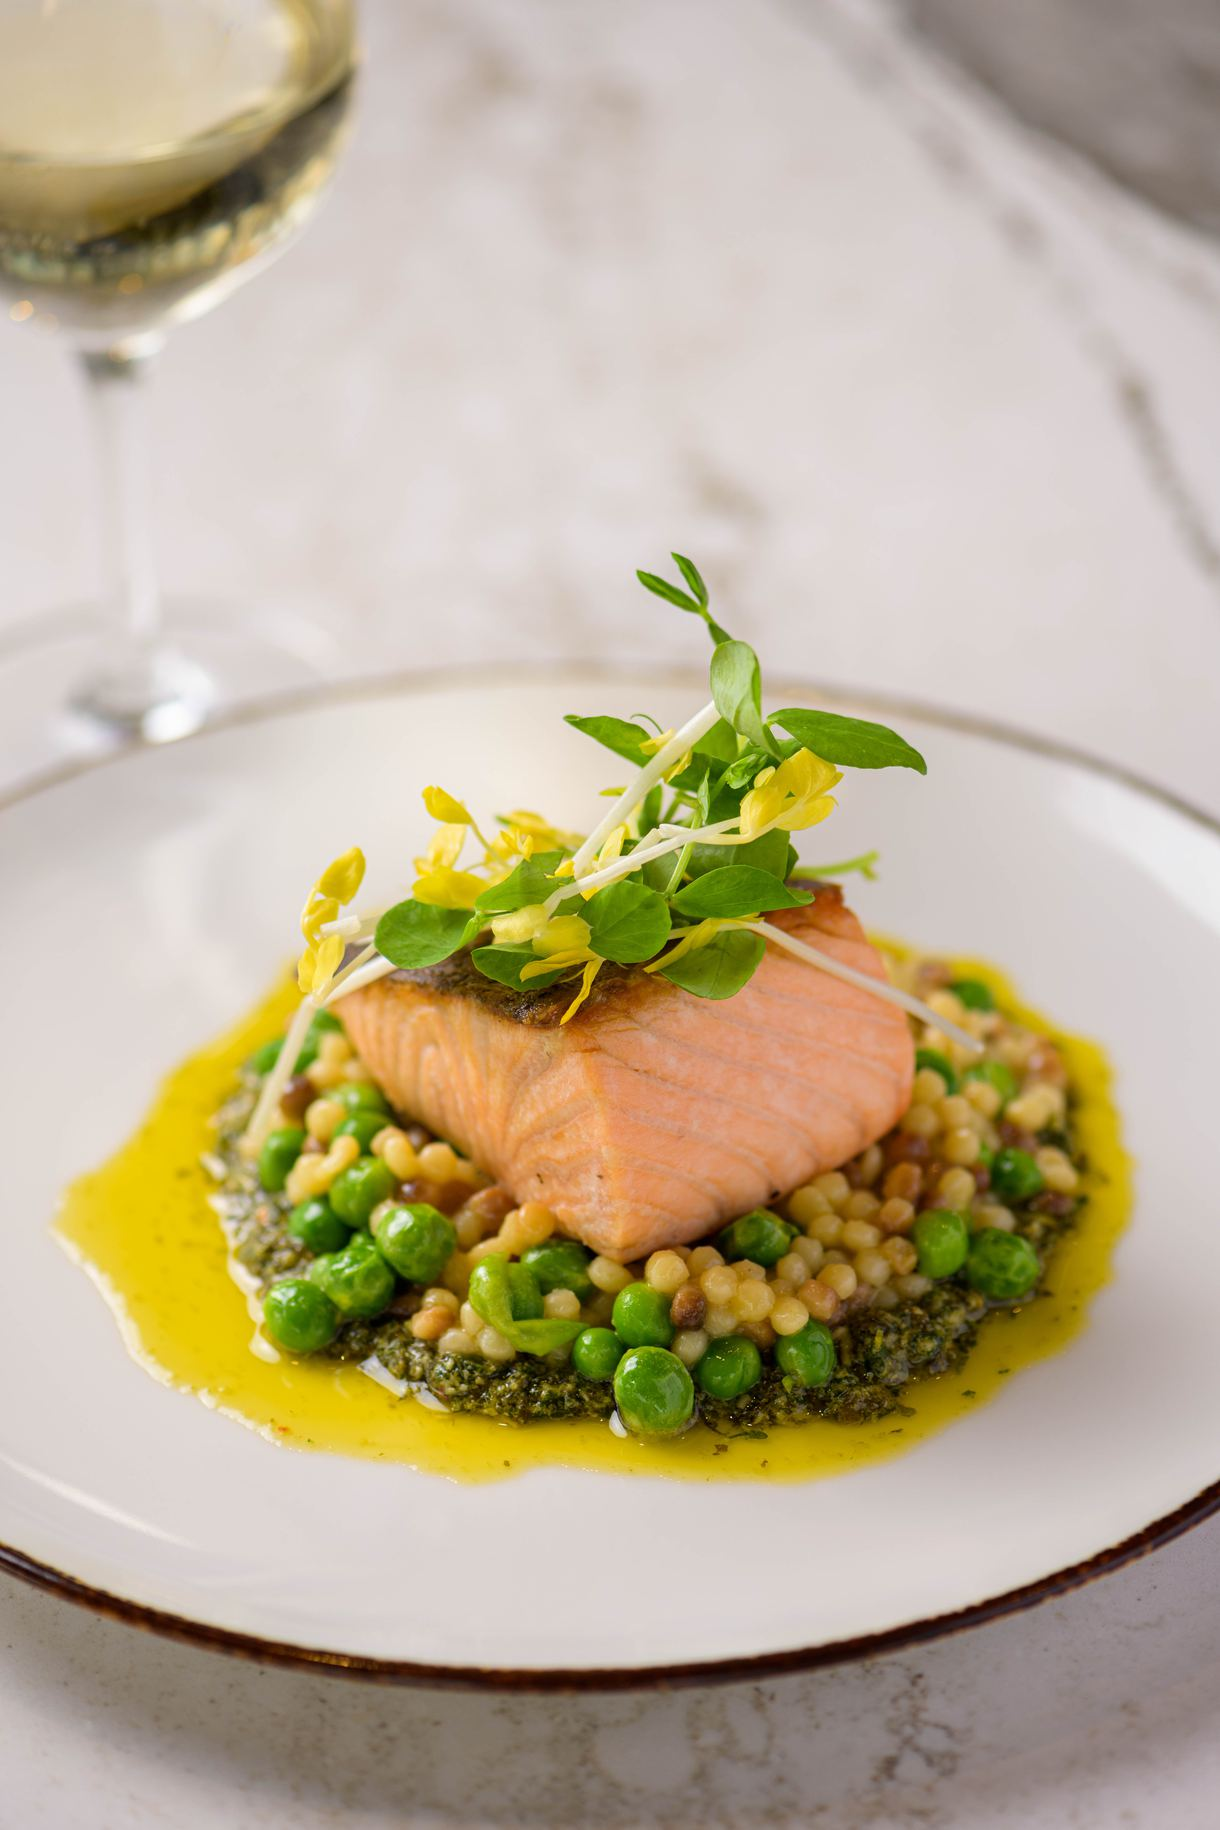 Fresh salmon crowns a bed of Sardinian pasta, peas, and basil pesto. Photo by Chris Schmauch.